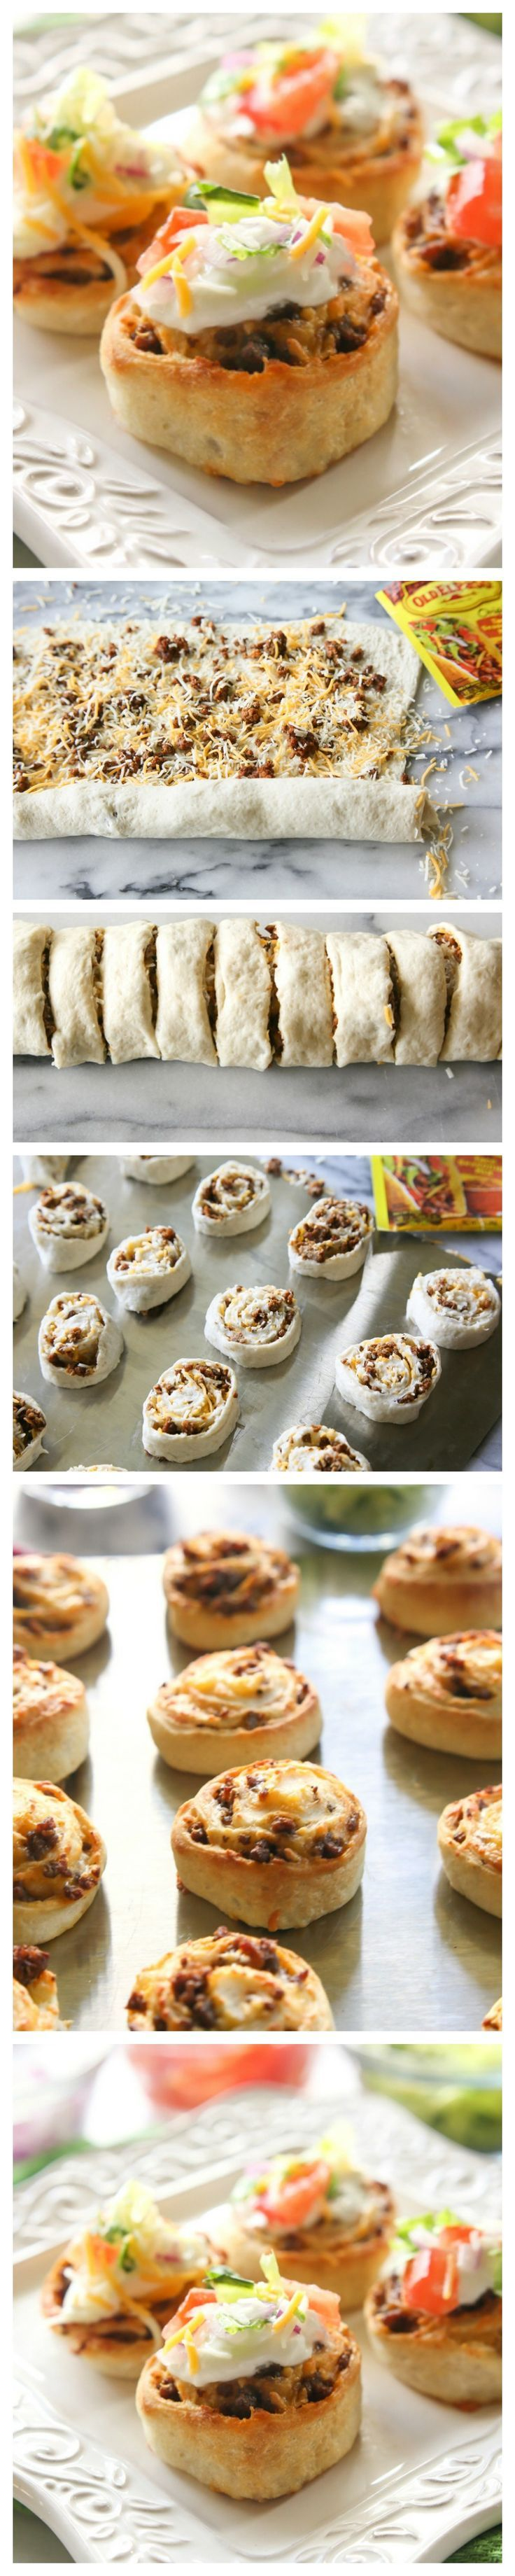 Taco Pizza Rolls - taco meat and cheese rolled up in pizza dough and topped with...